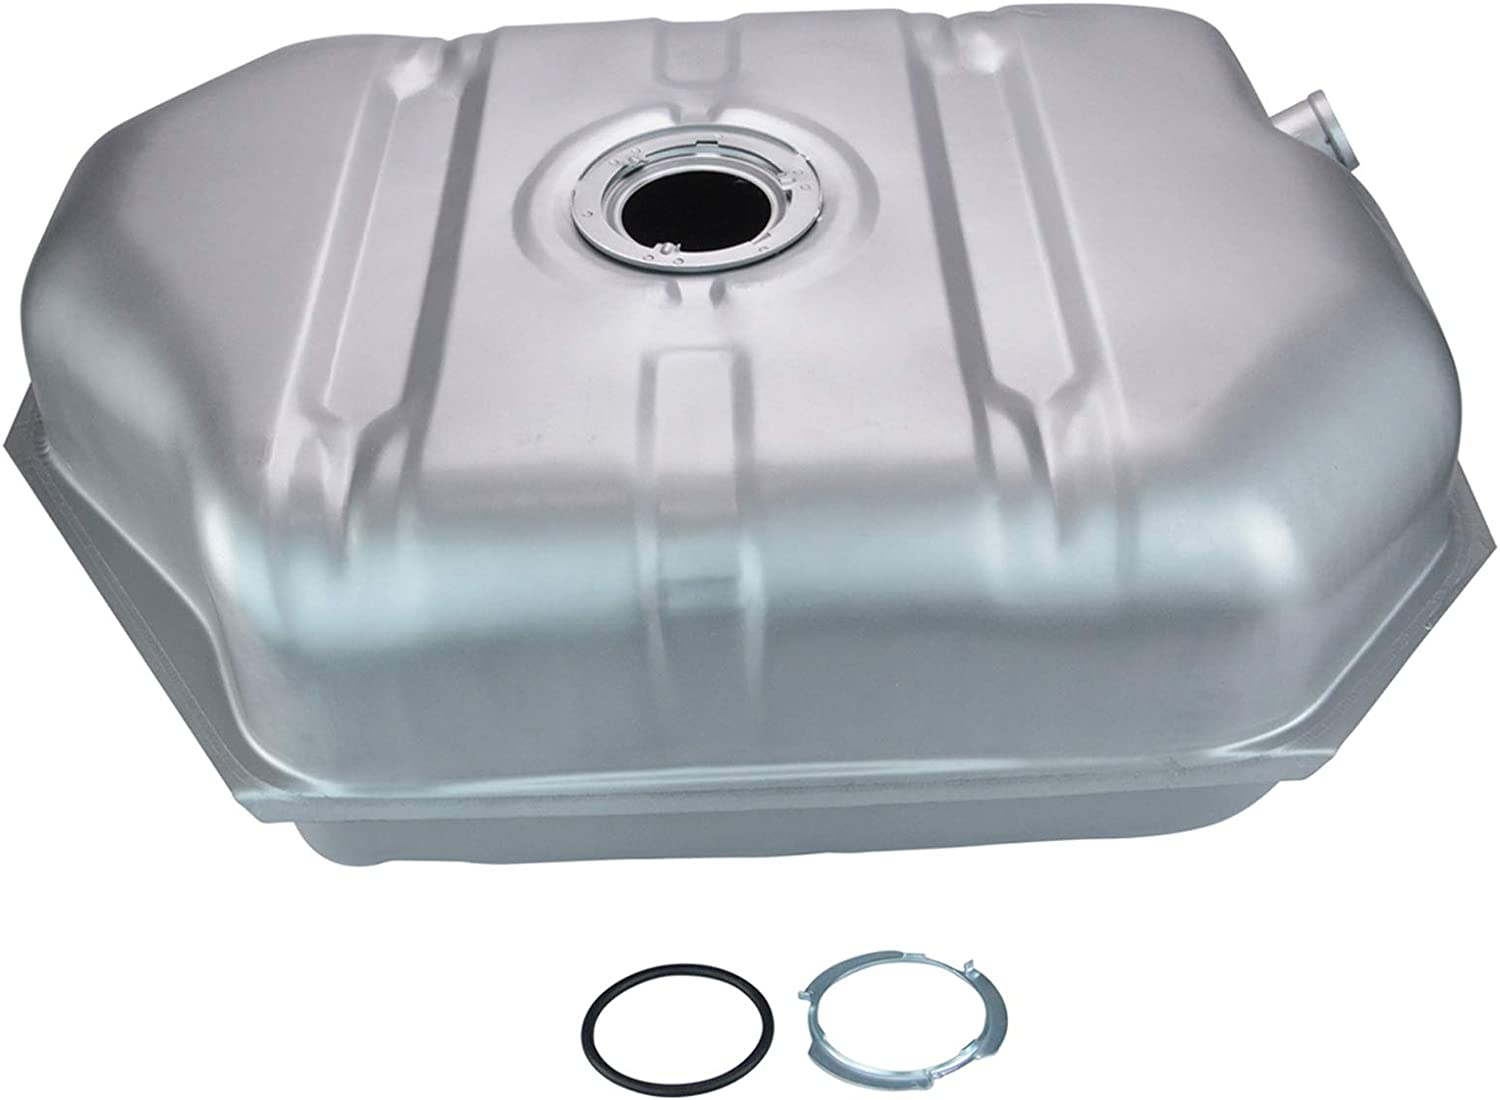 20 Gallon Fuel Gas Tank for Chevy S10 Blazer GMC S-15 Jimmy Olds Bravada